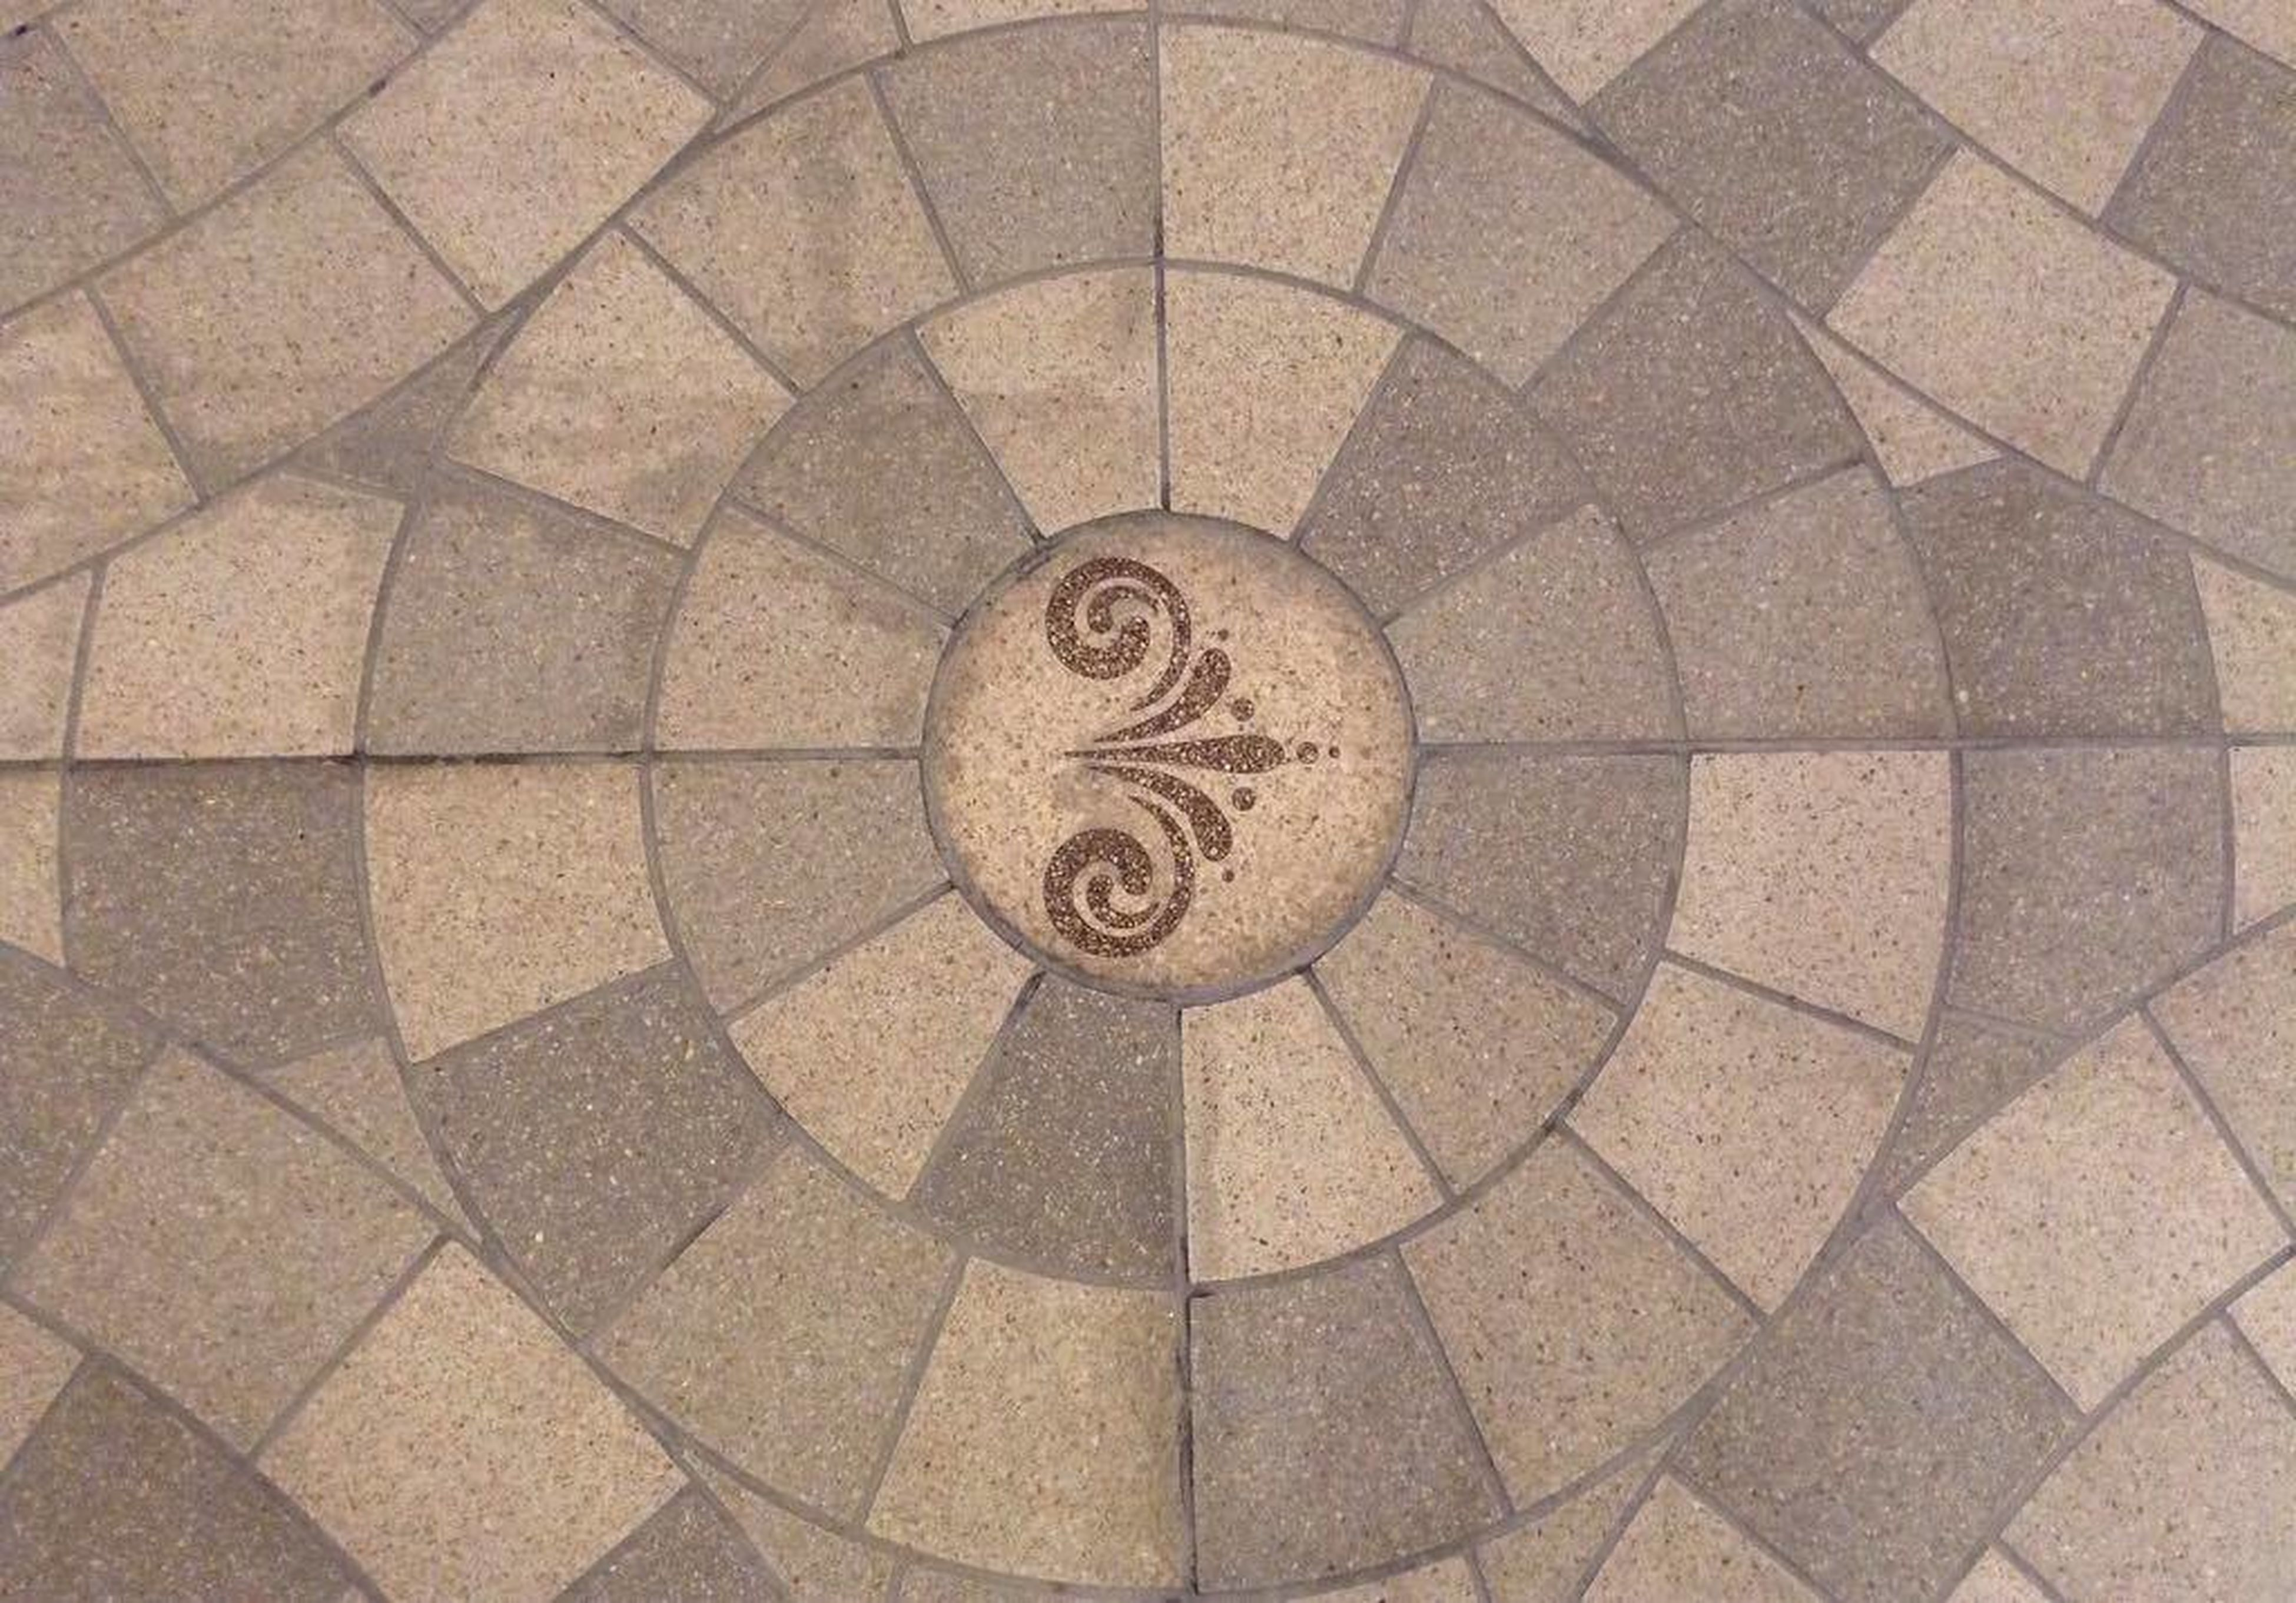 flooring, tiled floor, indoors, backgrounds, pattern, design, full frame, repetition, floor, geometric shape, circle, paving stone, architectural feature, tile floor, history, stone tile, no people, stone material, interiors, arrangement